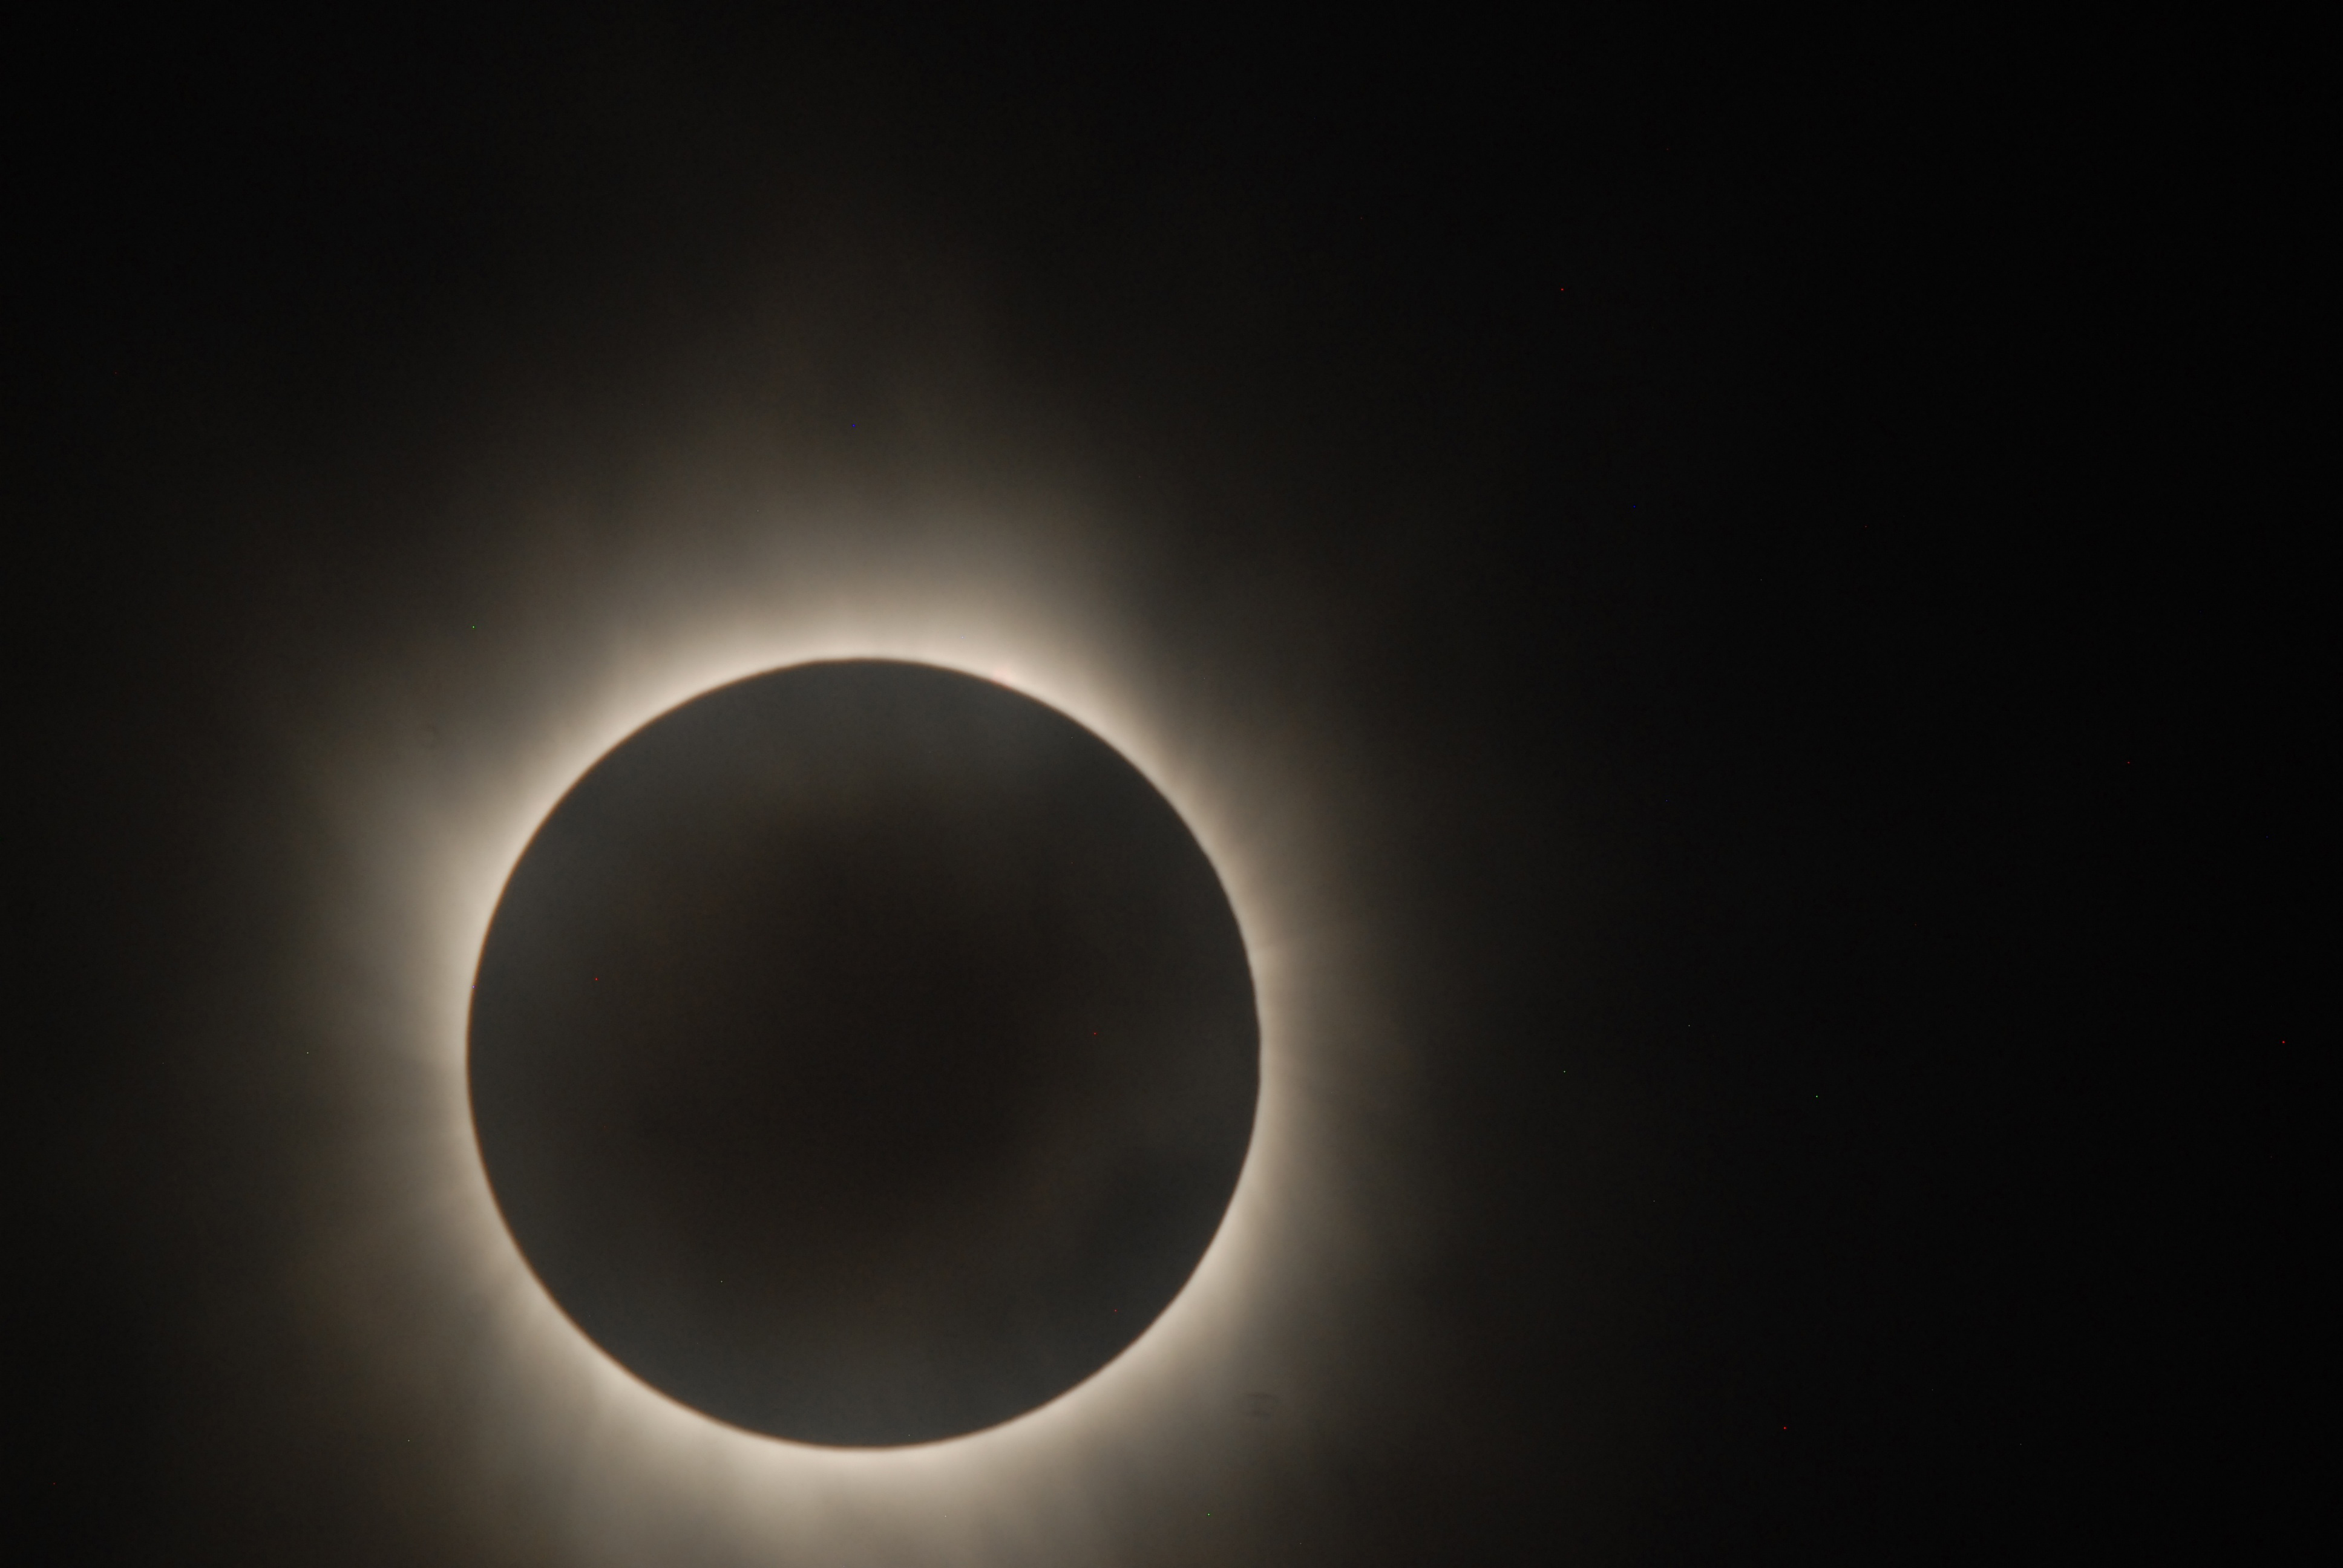 Images of Solar Eclipse as seen by Hinode Satellite   NASA